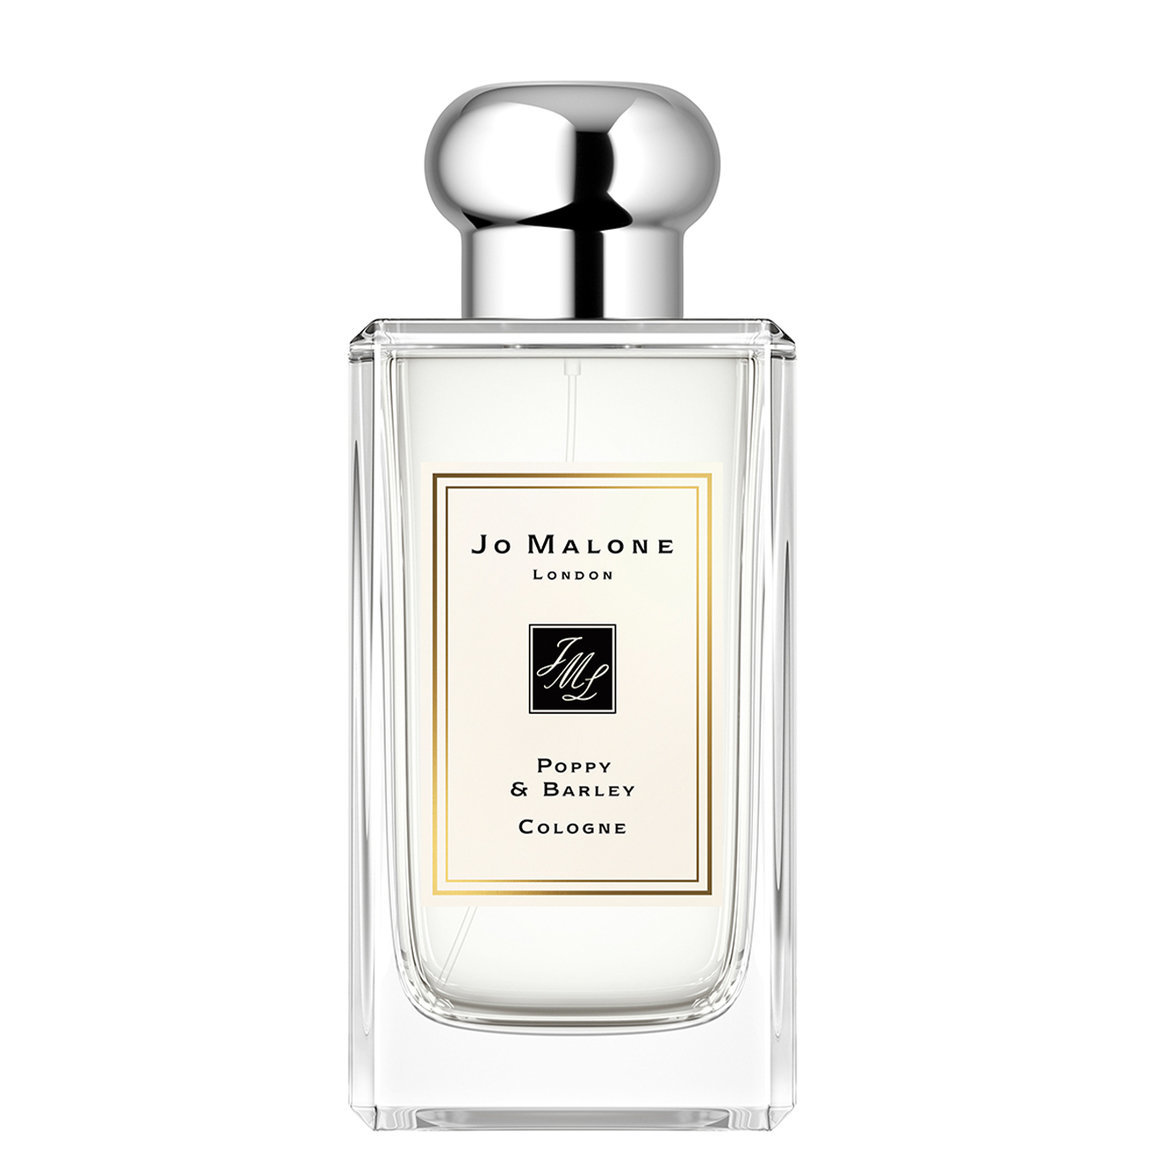 Jo Malone London Poppy & Barley Cologne 100 ml product smear.